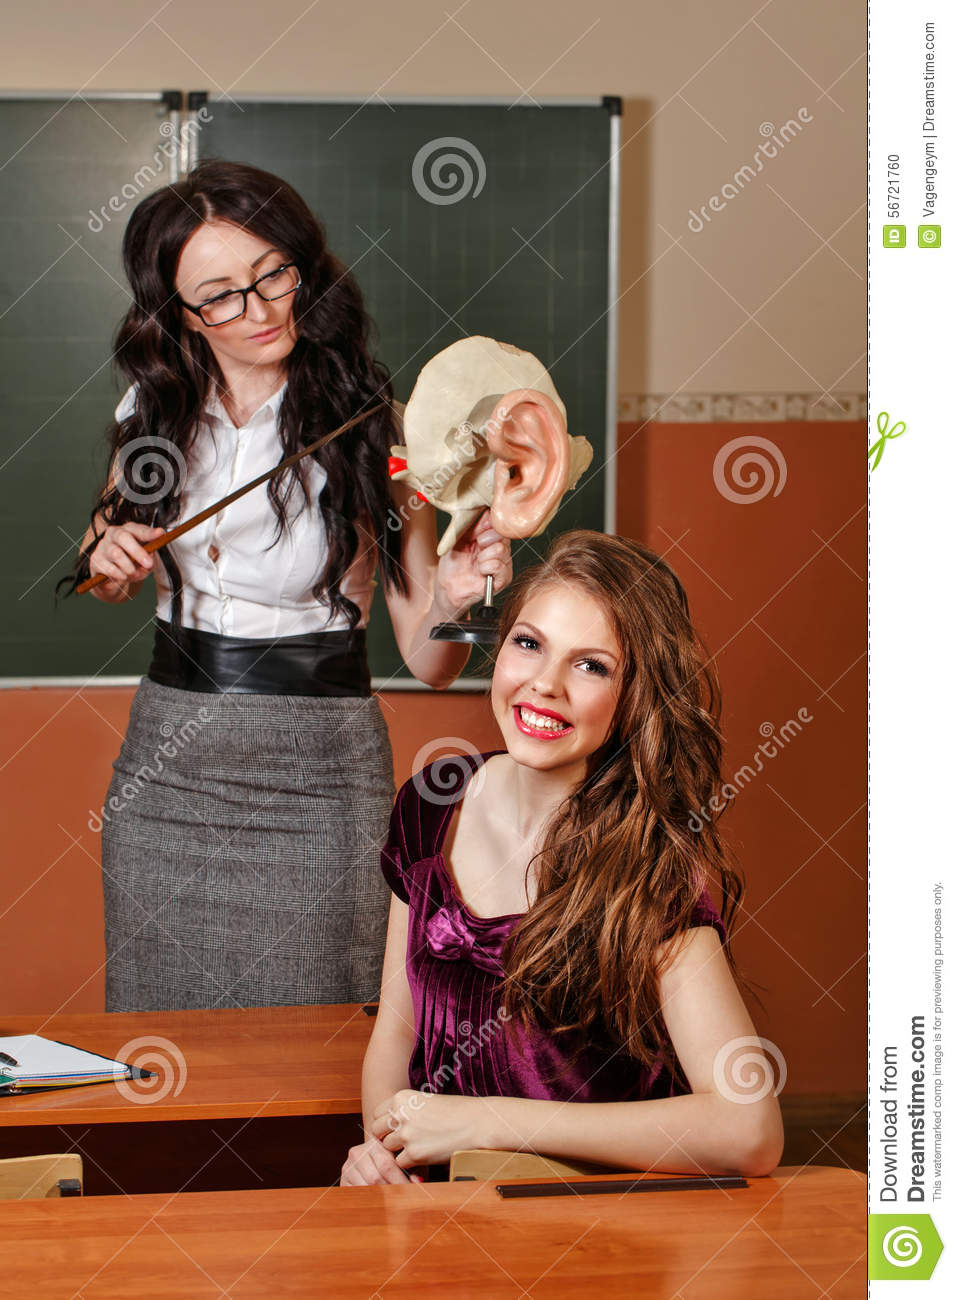 Teacher And Pupil In The Anatomy Lesson. Stock Photo - Image of ...